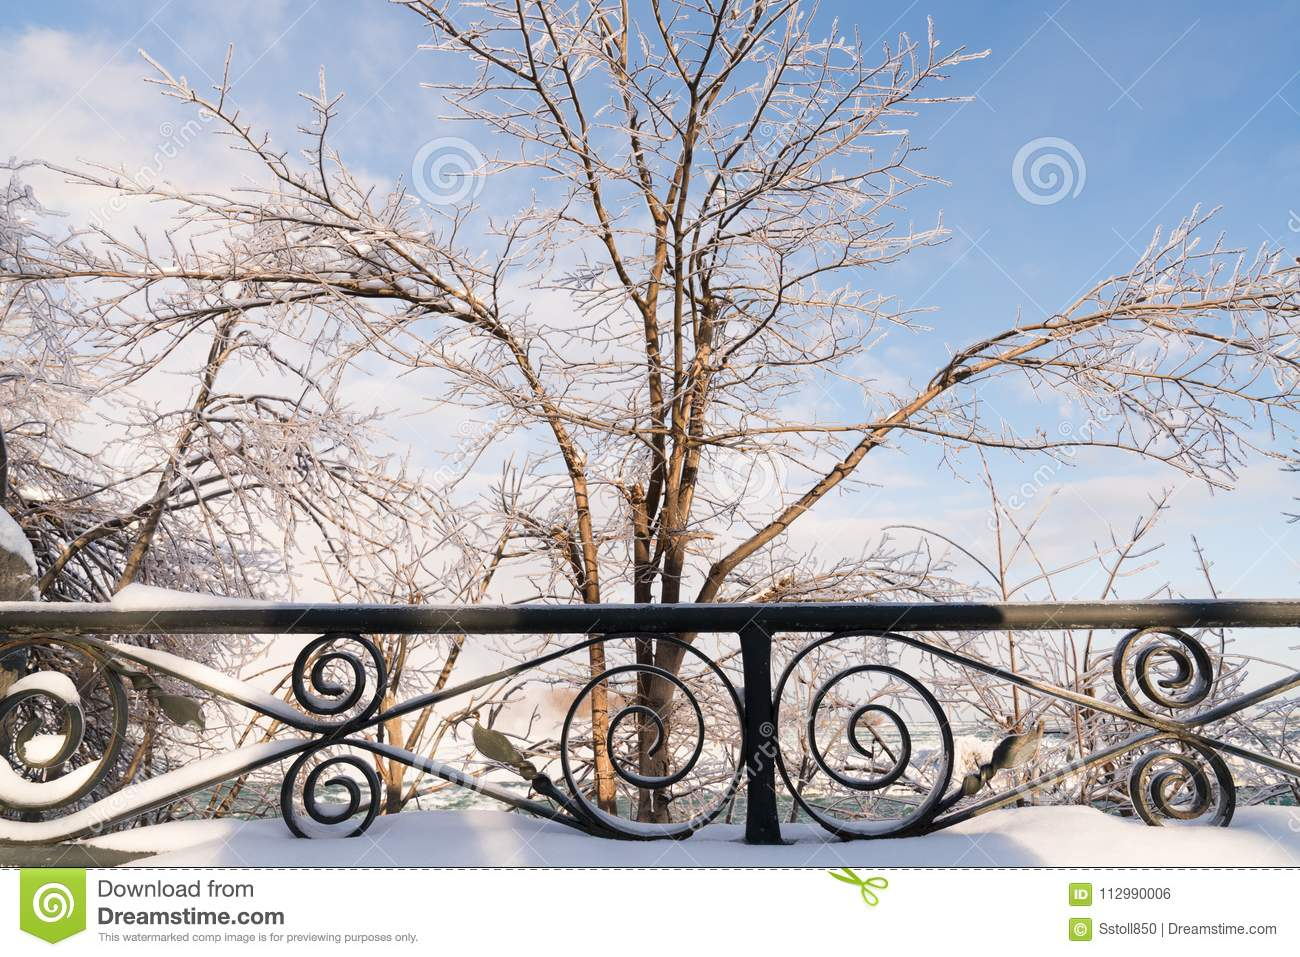 Ice-covered trees at Niagara Falls, Canada in winter